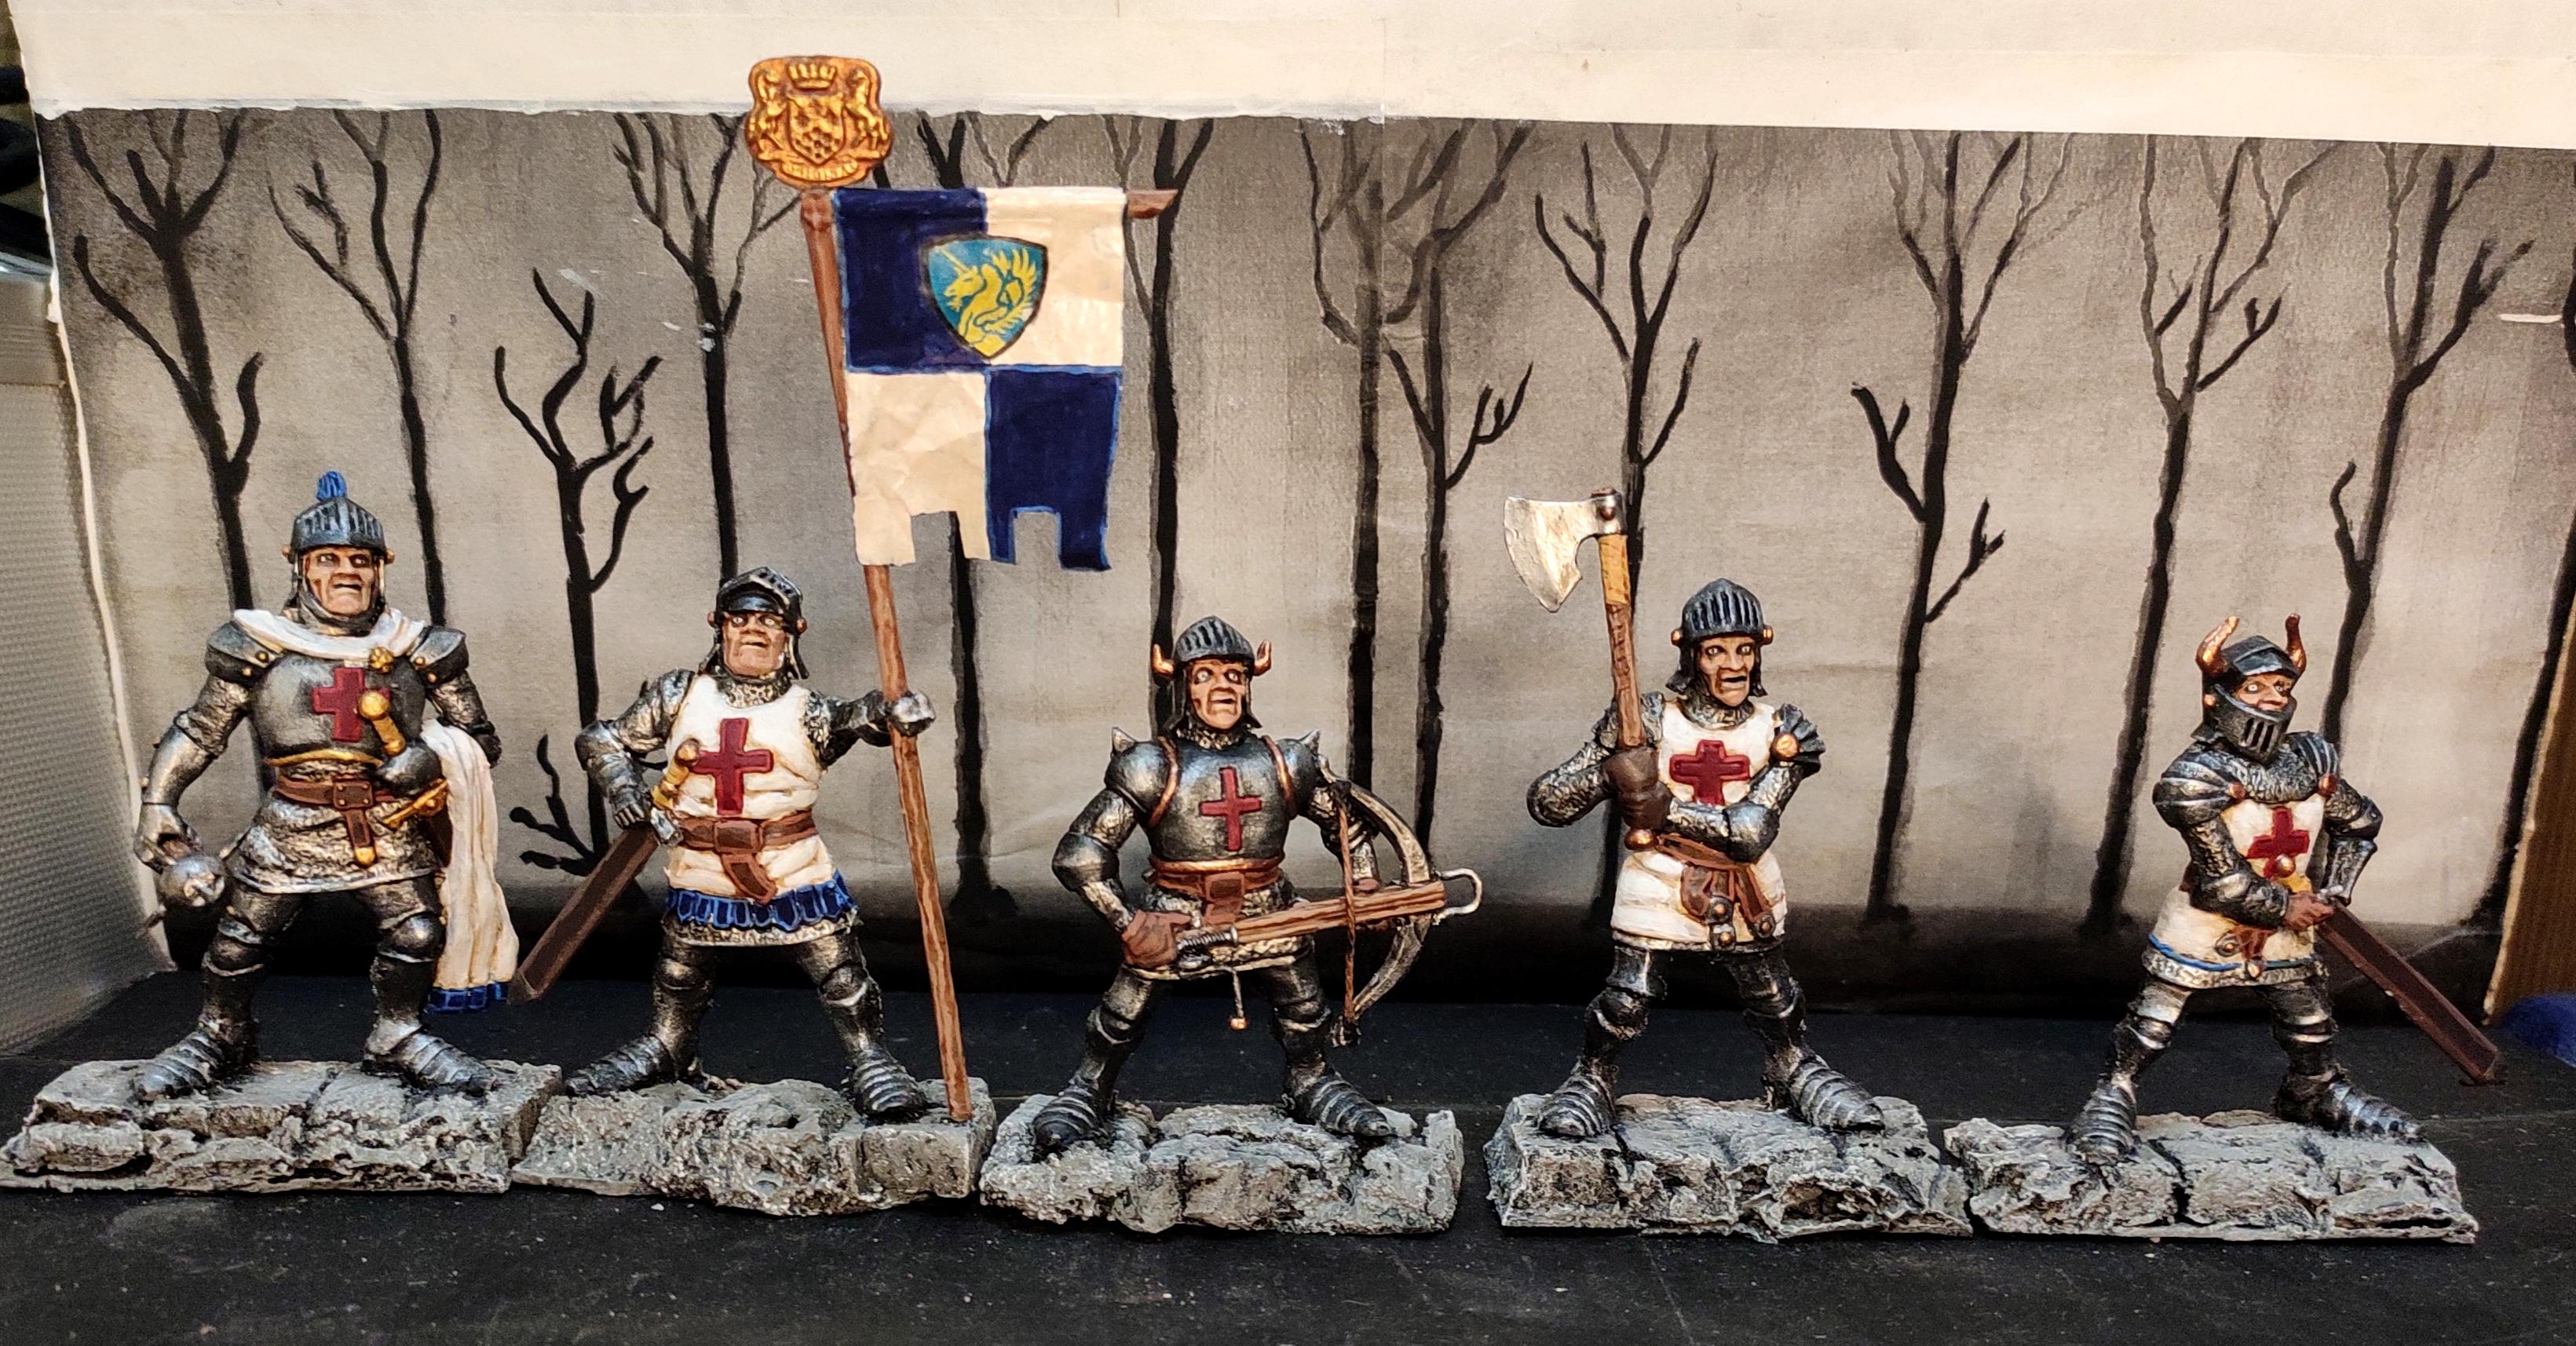 Axe, Banner, Bus Ticket, Commander, Conversion, Crossbow, Crusader, Fantasy Battles, From Russia, Knights, Mace, Order, Regiment, Retro, Scratch Build, Sword, Technolog, Tehnolog